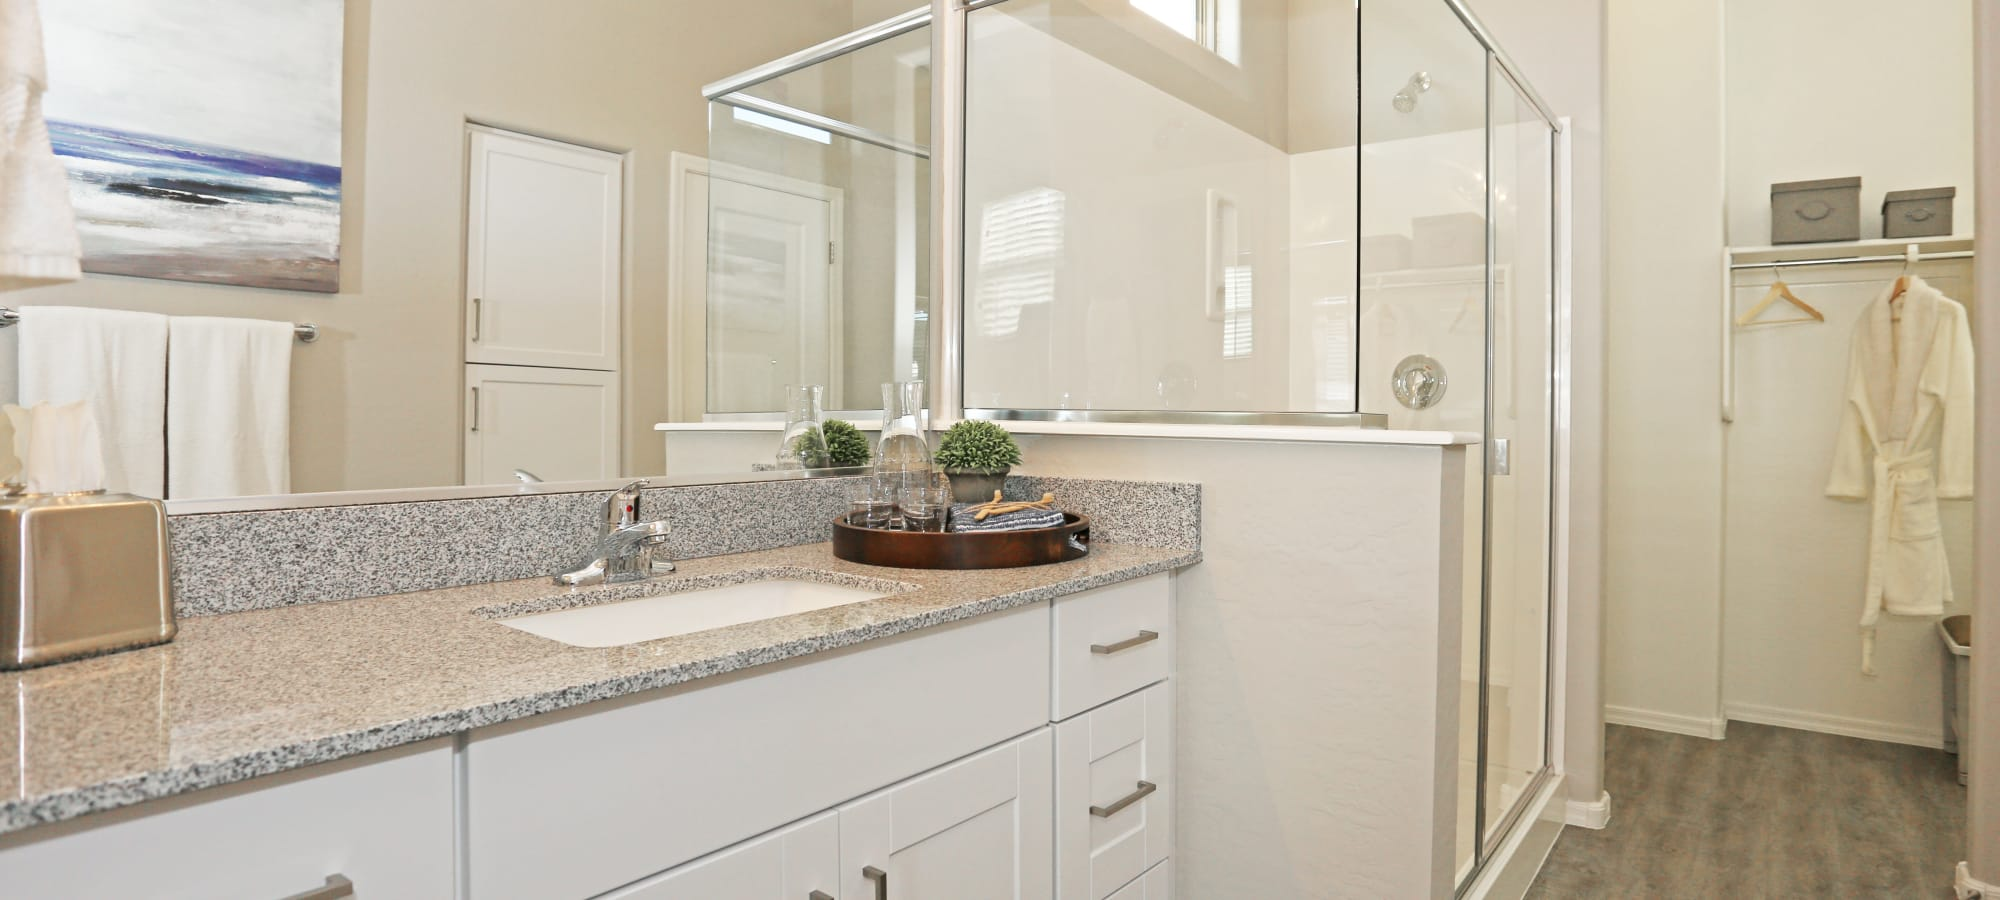 Granite countertop in the bathroom of a model home at Christopher Todd Communities At Estrella Commons in Goodyear, Arizona